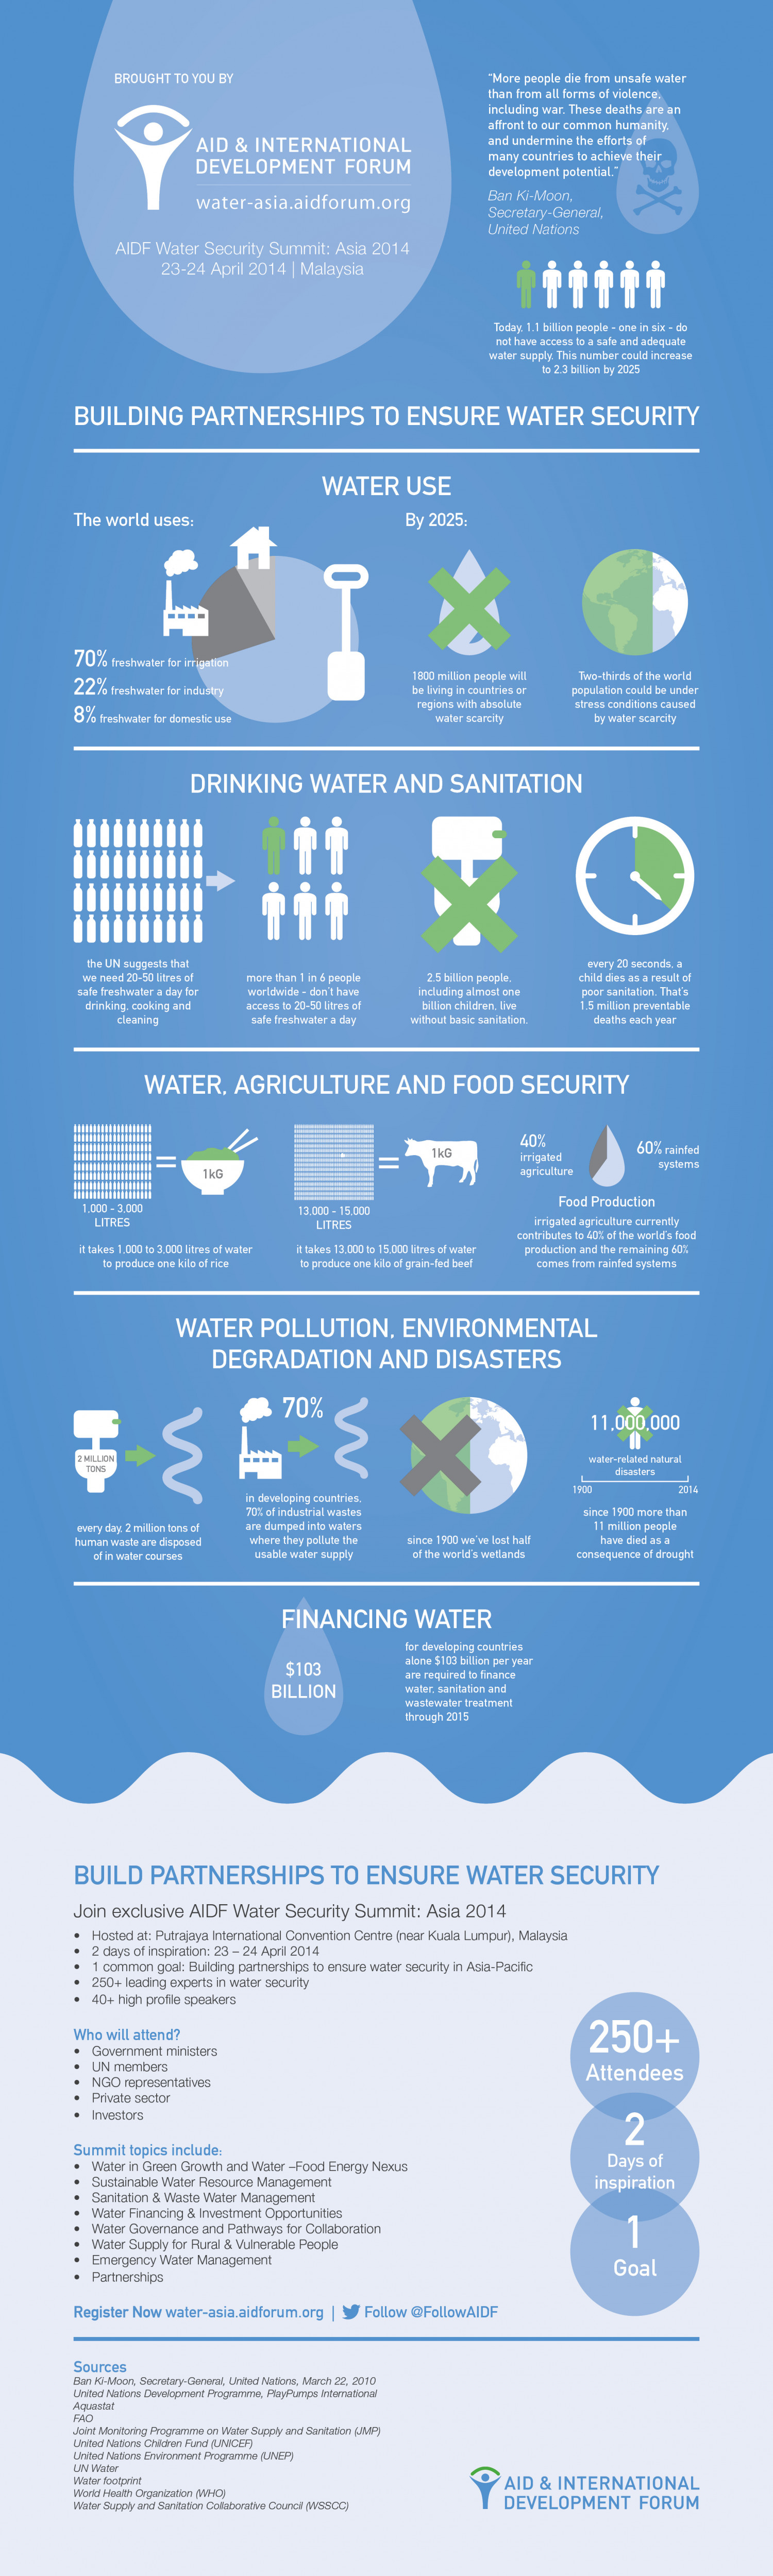 AIDF Water Security Summit: Asia 2014 Infographic